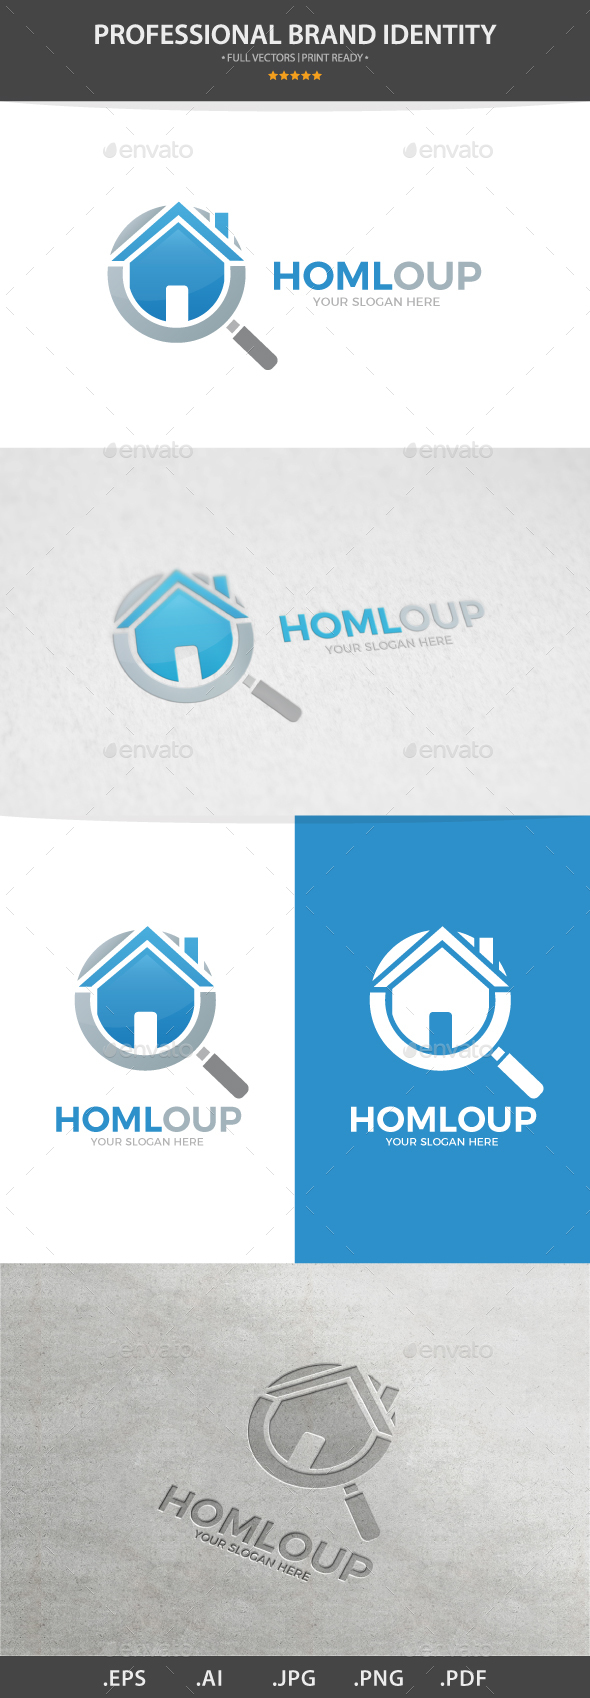 Vector Logo Combination Of a Loupe And House - Buildings Logo Templates